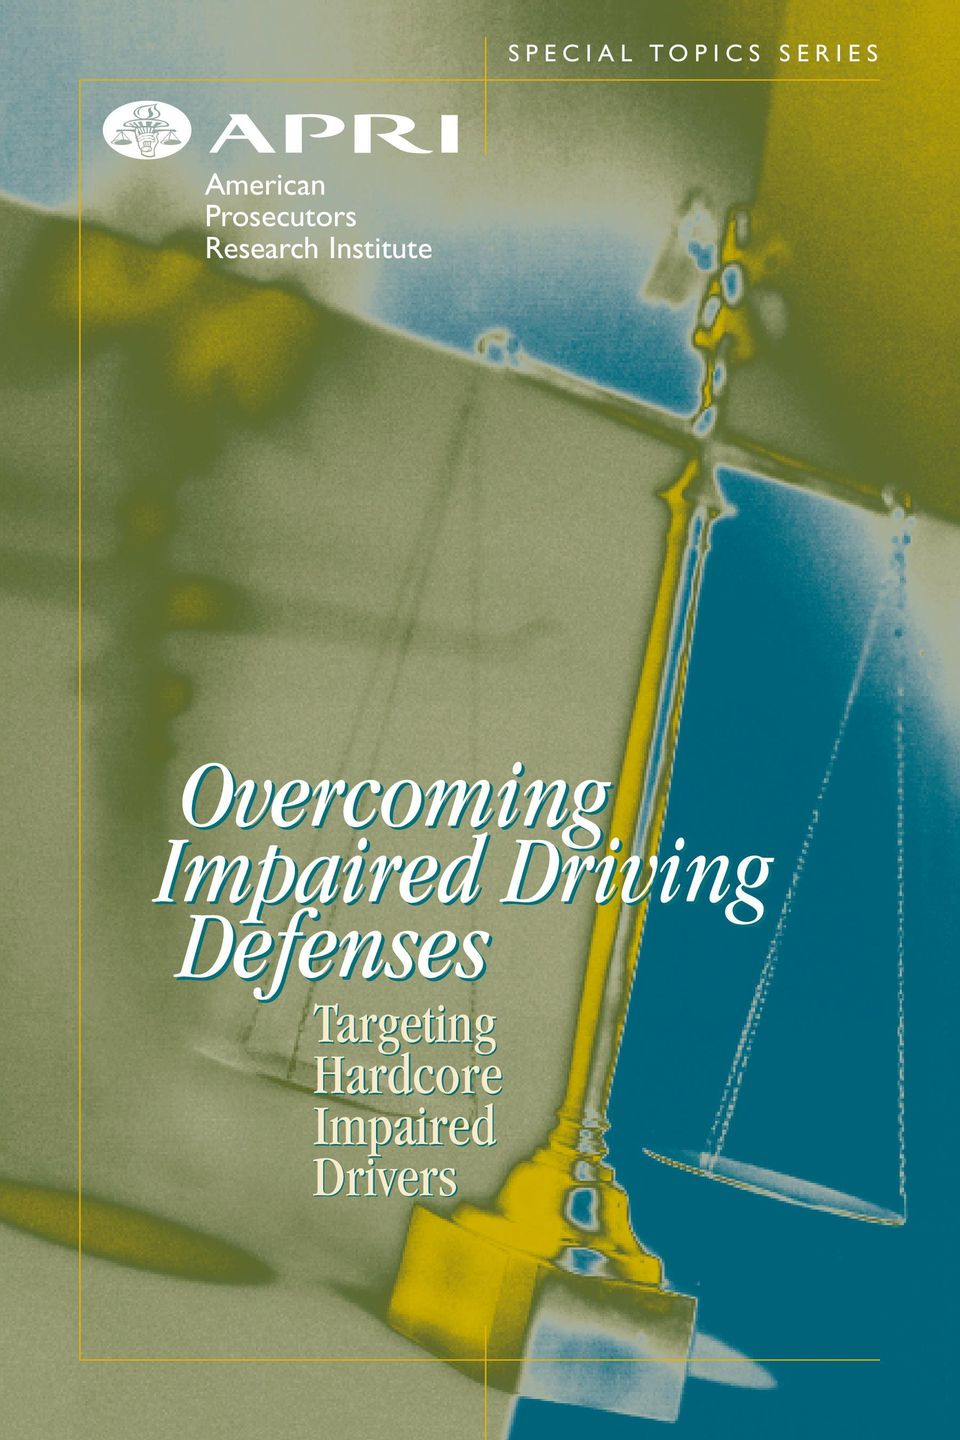 Overcoming Impaired Driving